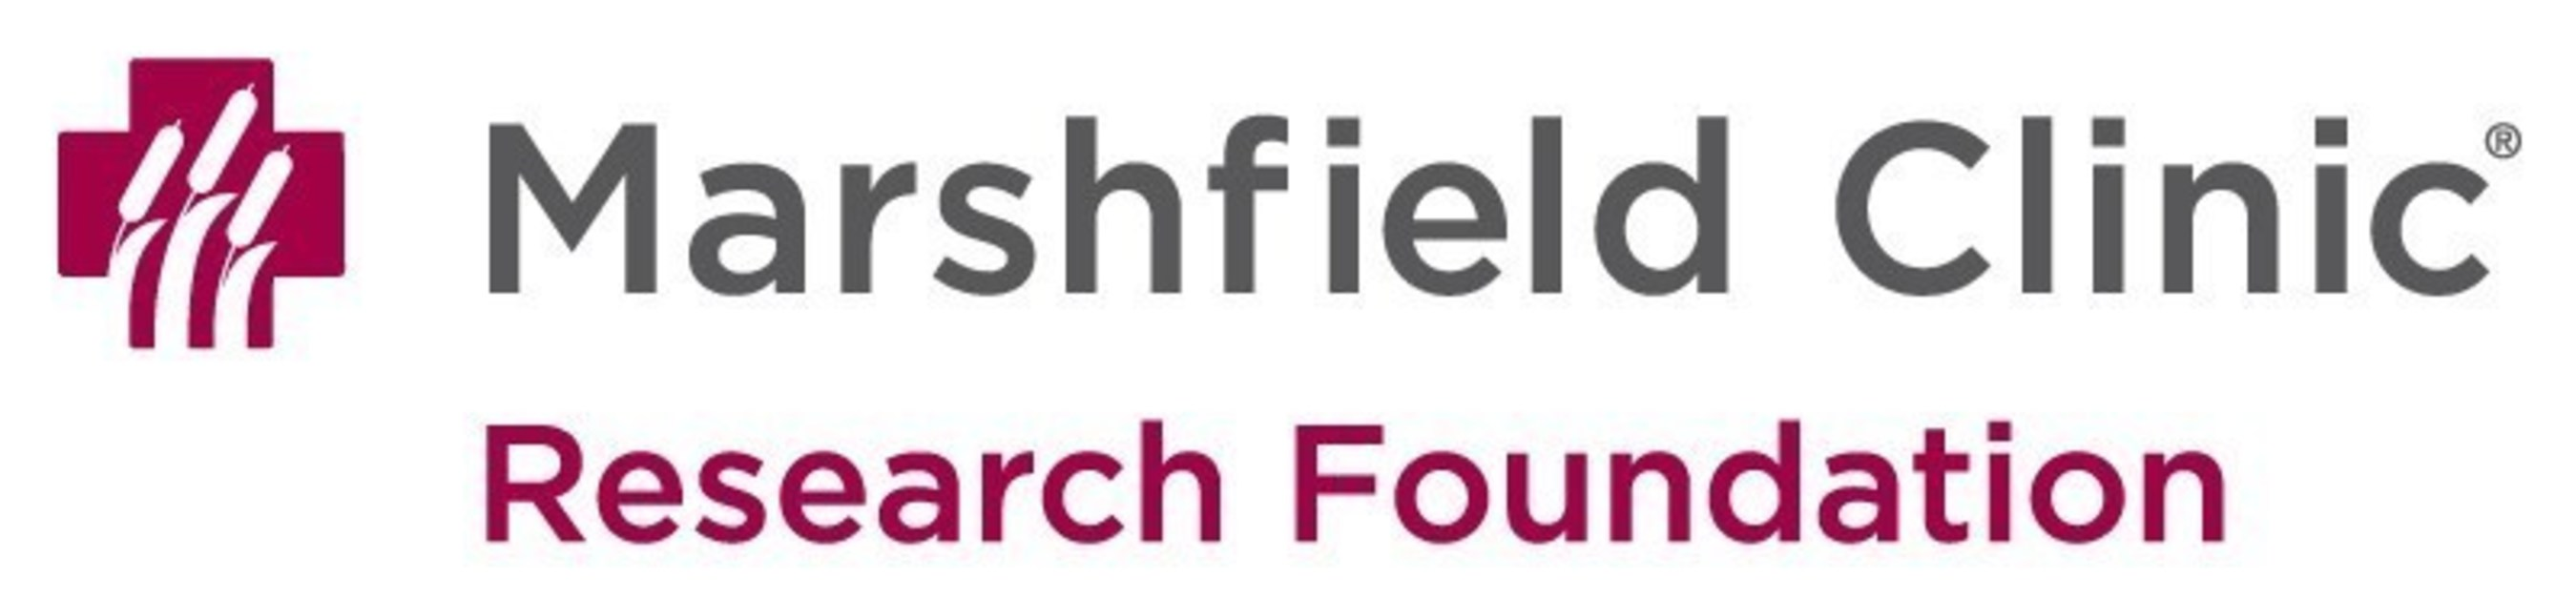 Marshfield Clinic Research Foundation logo